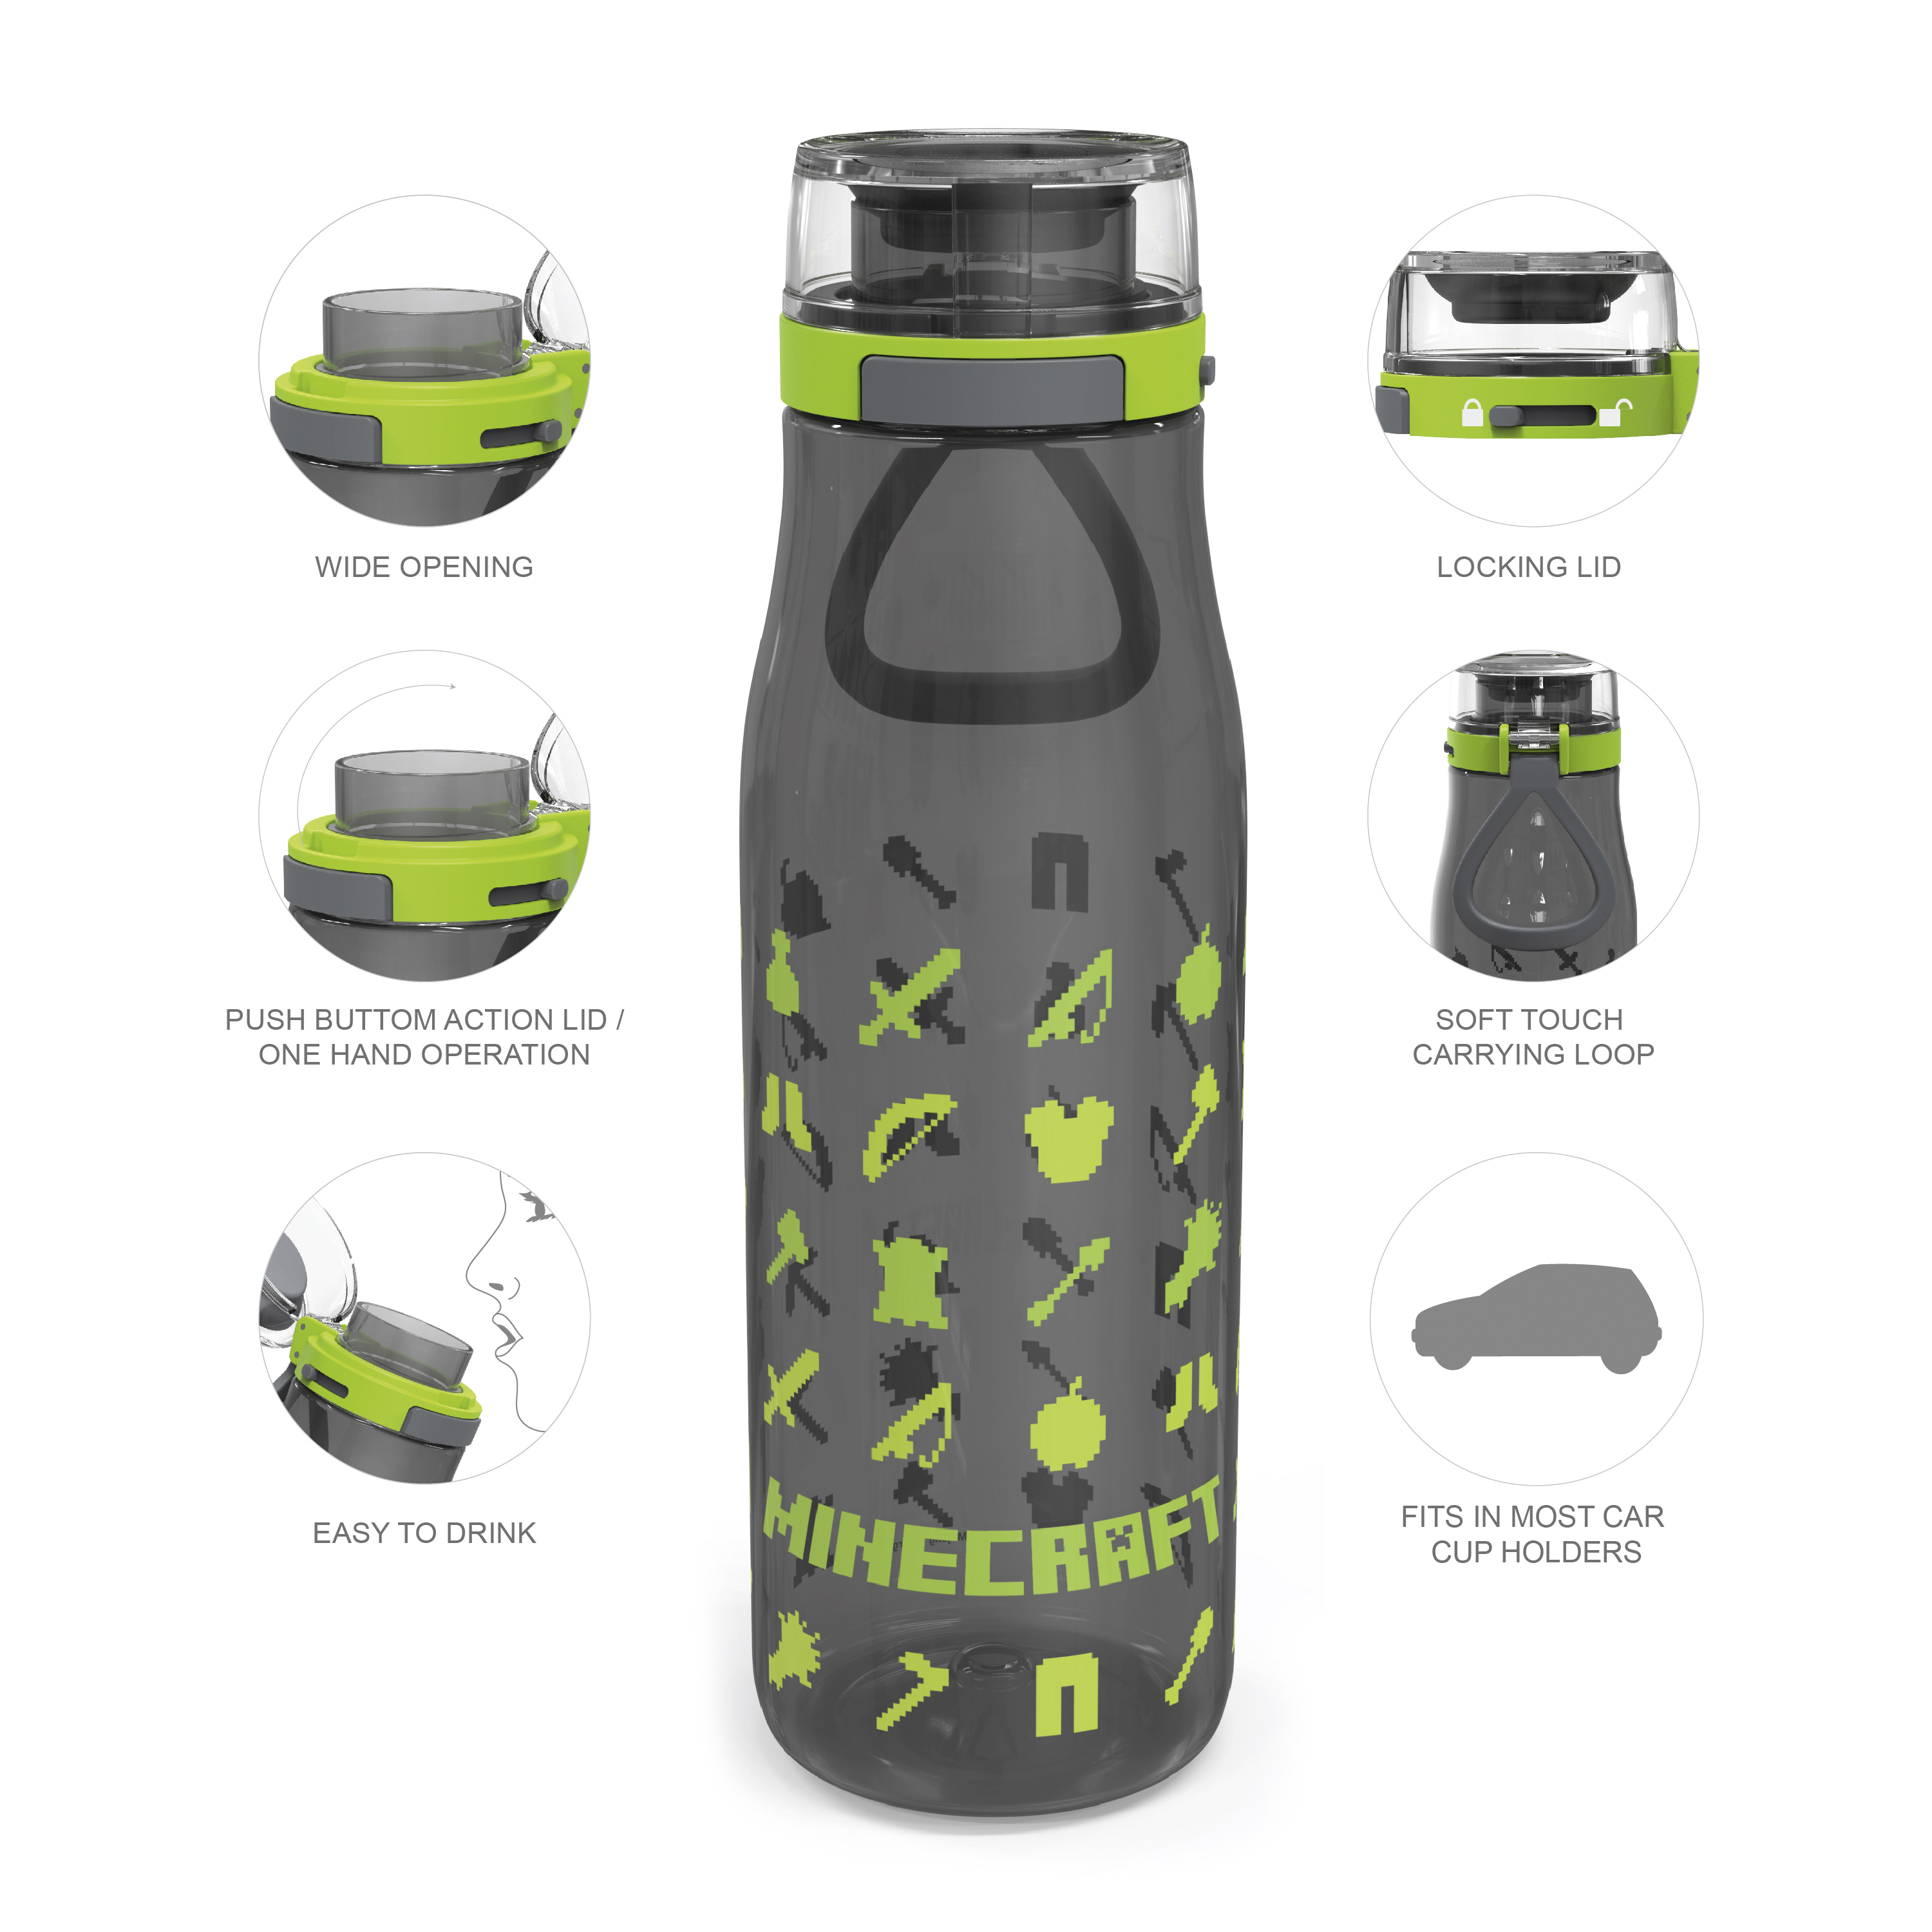 Minecraft 25 ounce Water Bottle and Straws, Weapons and Tools, 3-piece set slideshow image 6